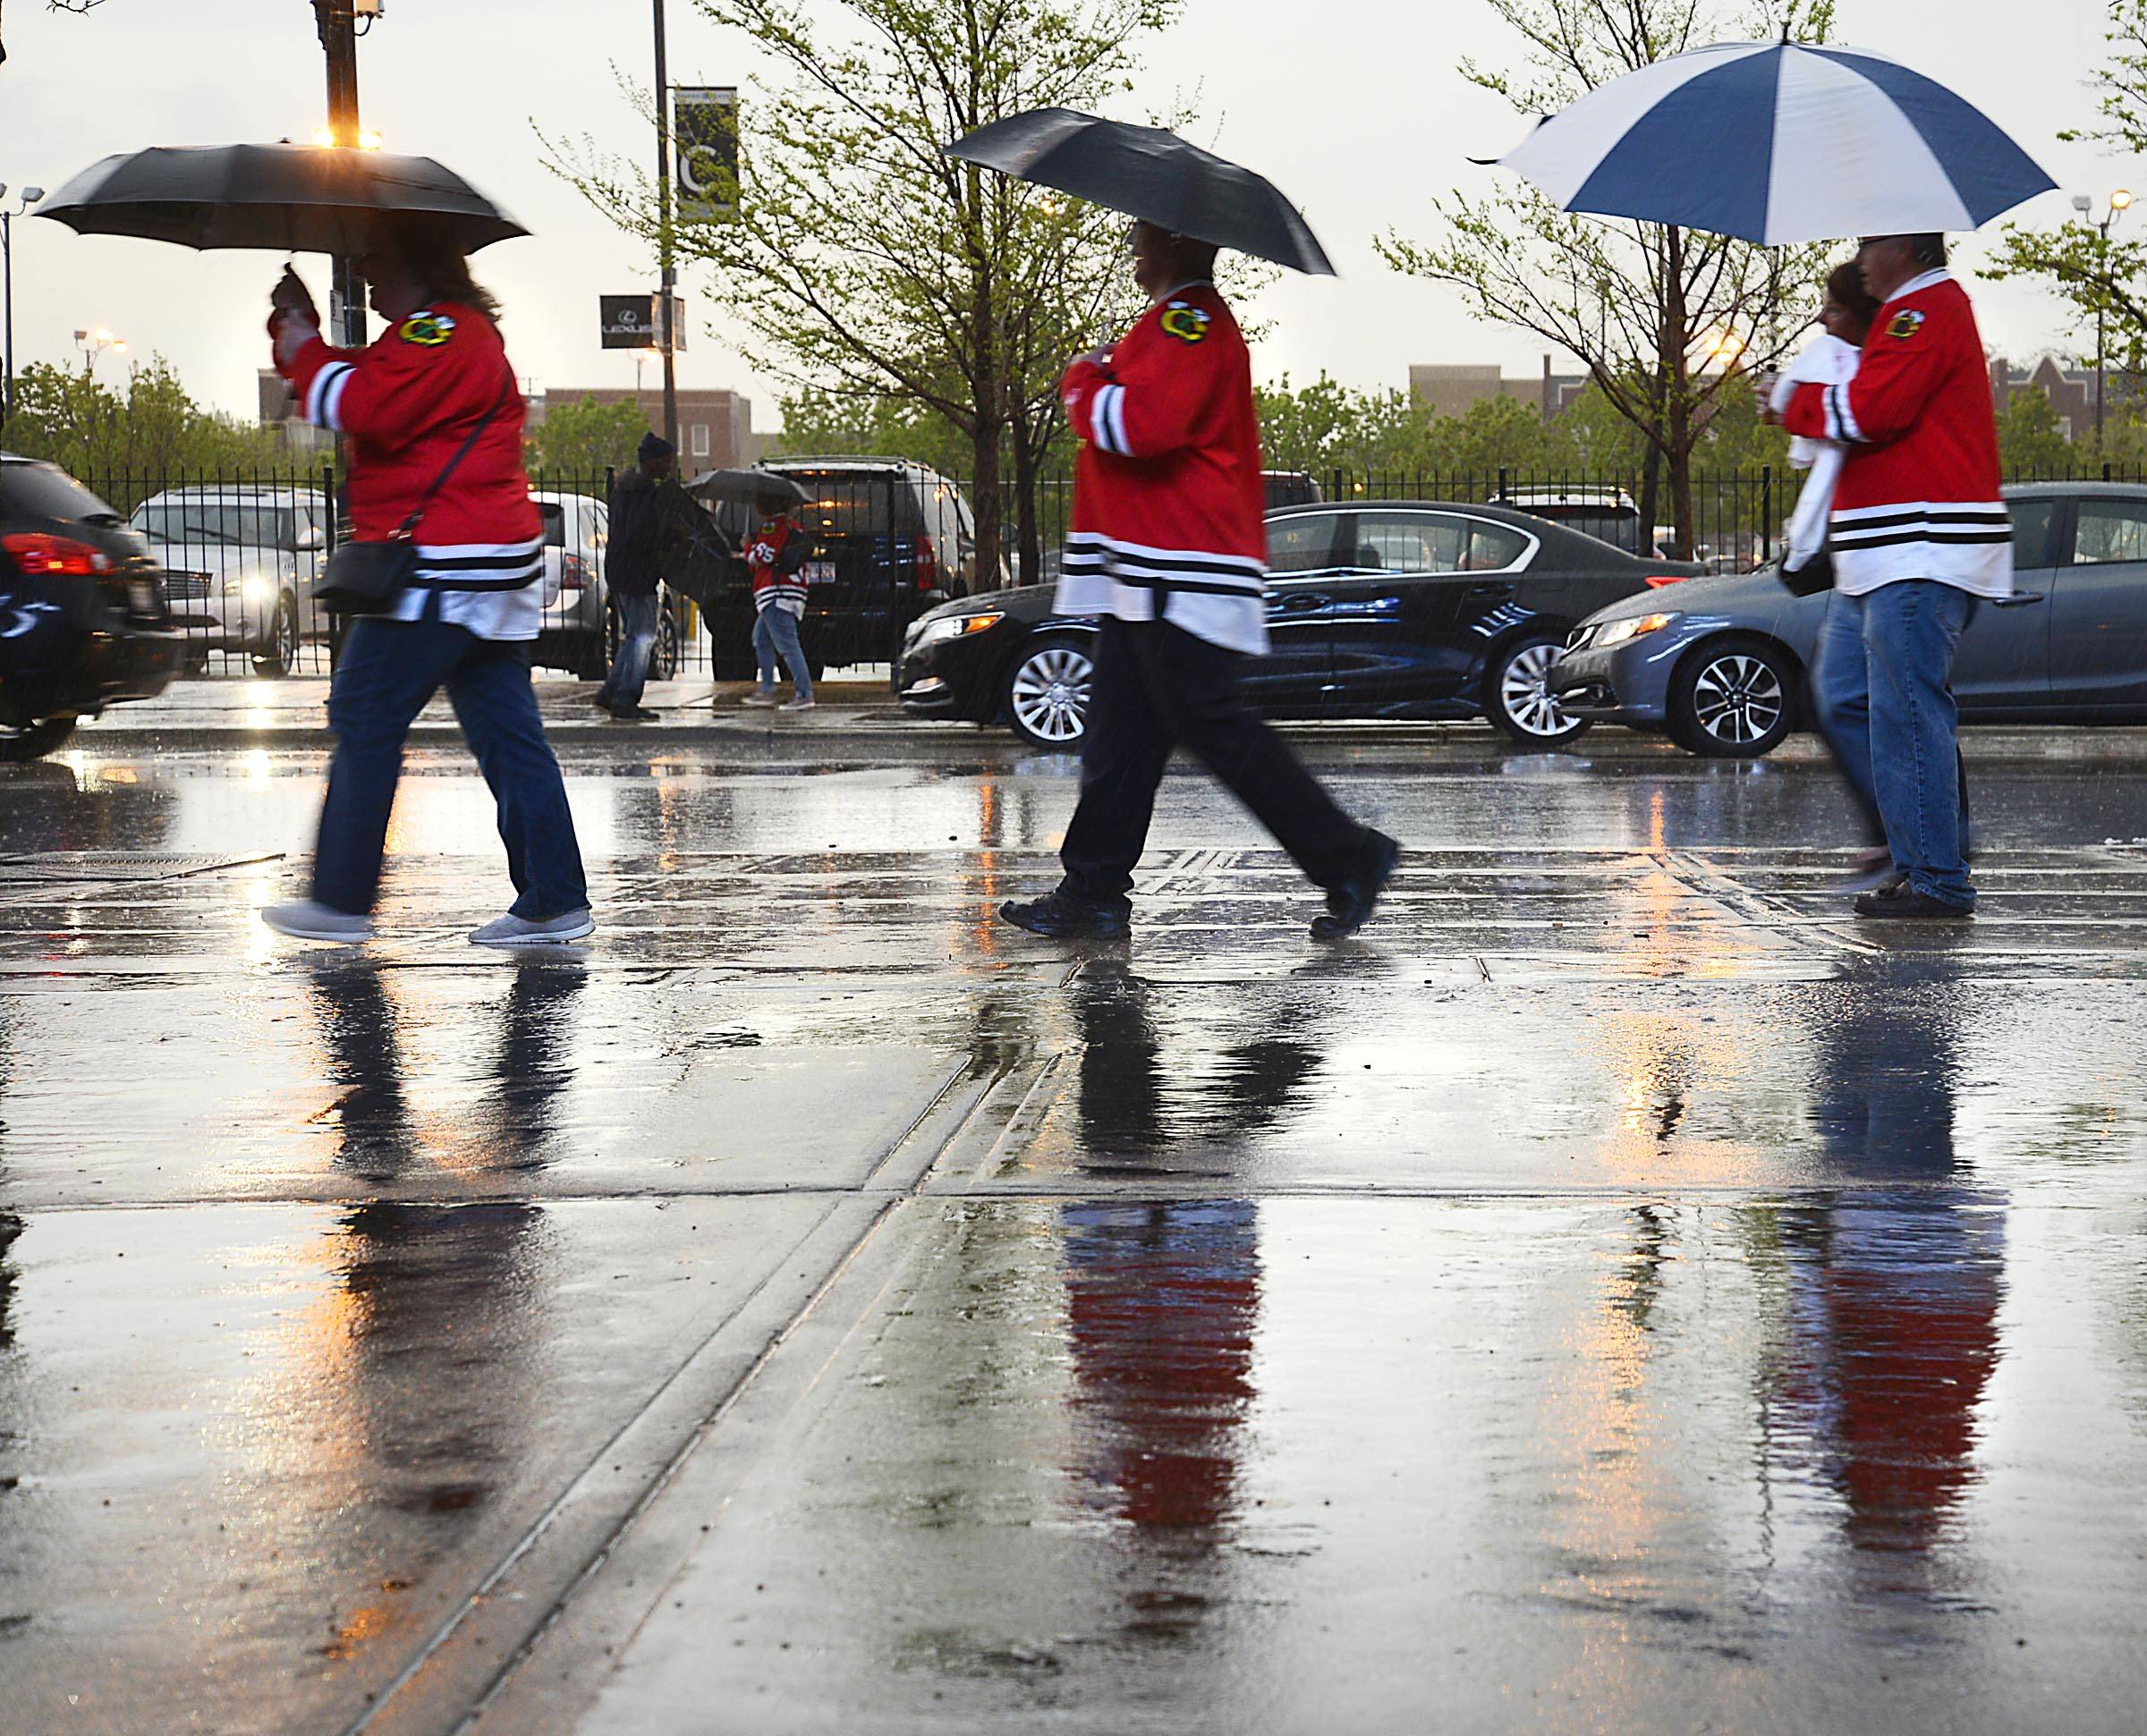 Blackhawks fans use umbrellas as they arrive in the rain Sunday at the United Center in Chicago for Game 5 of round 2 of the Stanley Cup Playoffs against the Minnesota Wild.